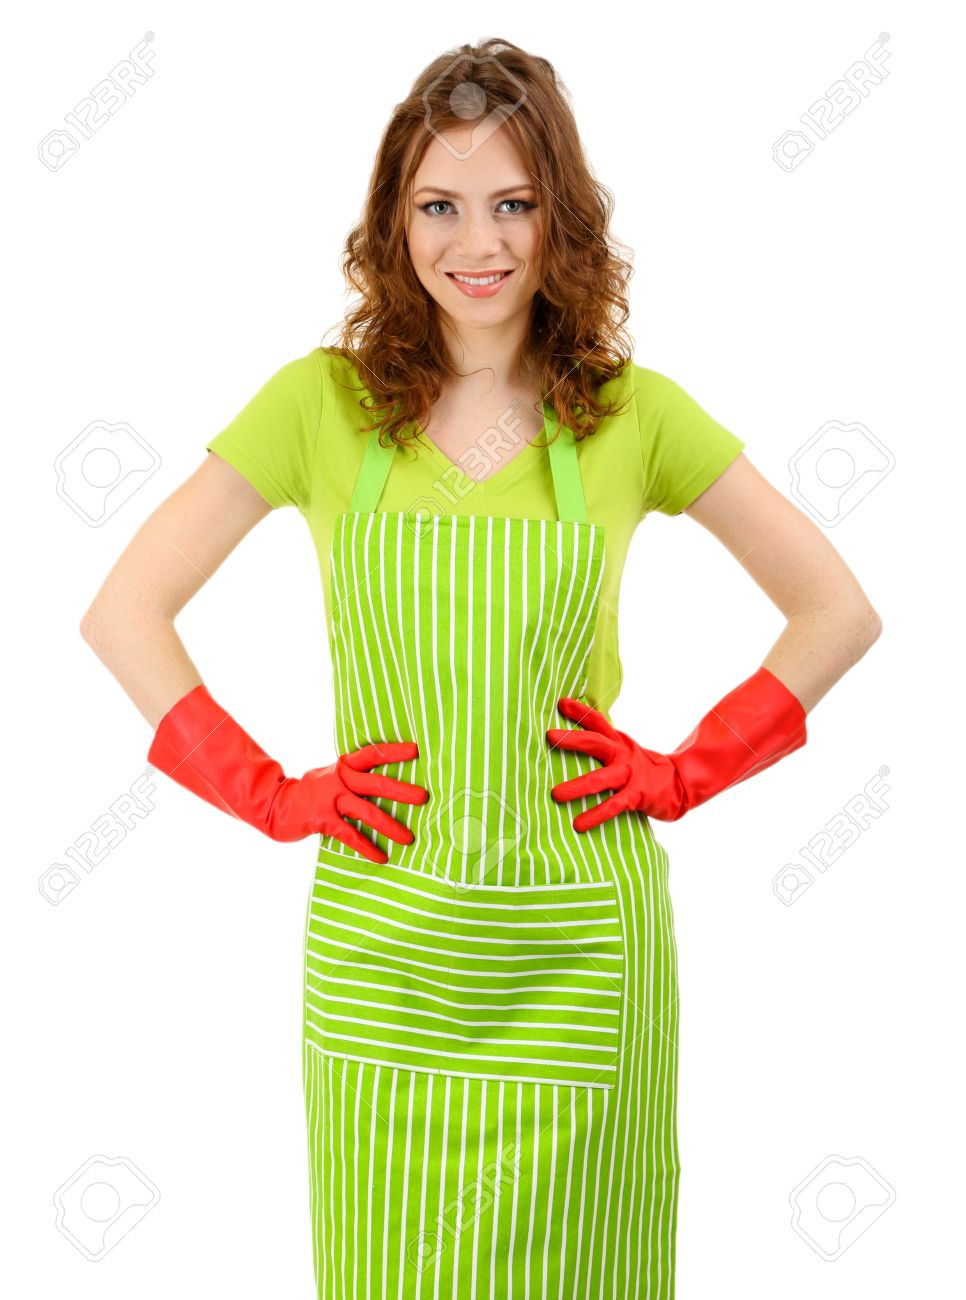 White rubber apron - Stock Photo Young Woman Wearing Green Apron And Rubber Gloves Isolated On White